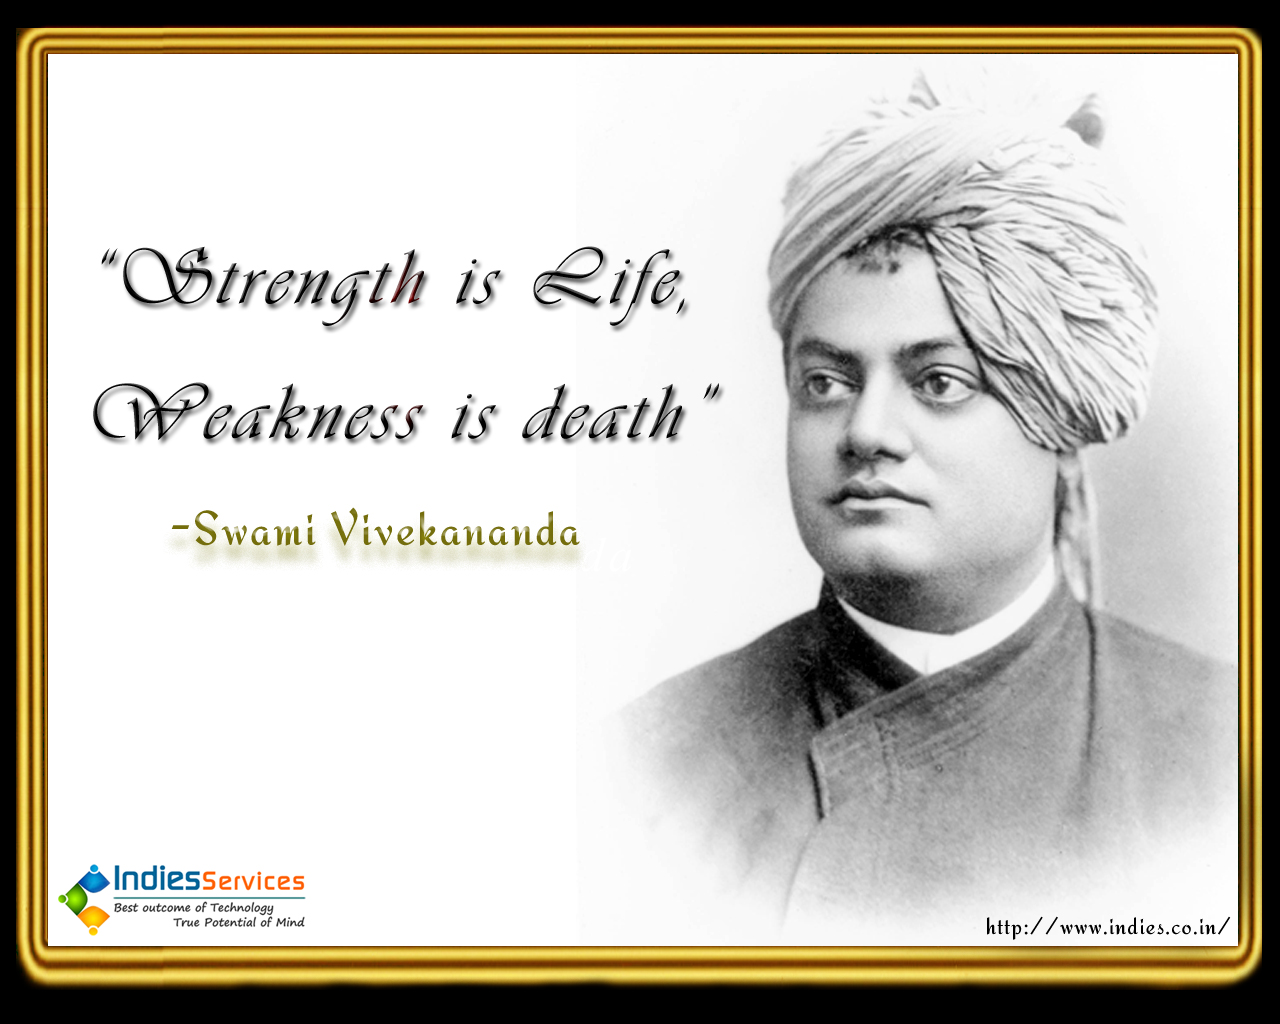 101 Inspiring Swami Vivekananda Quotes to Fire Your Spirit